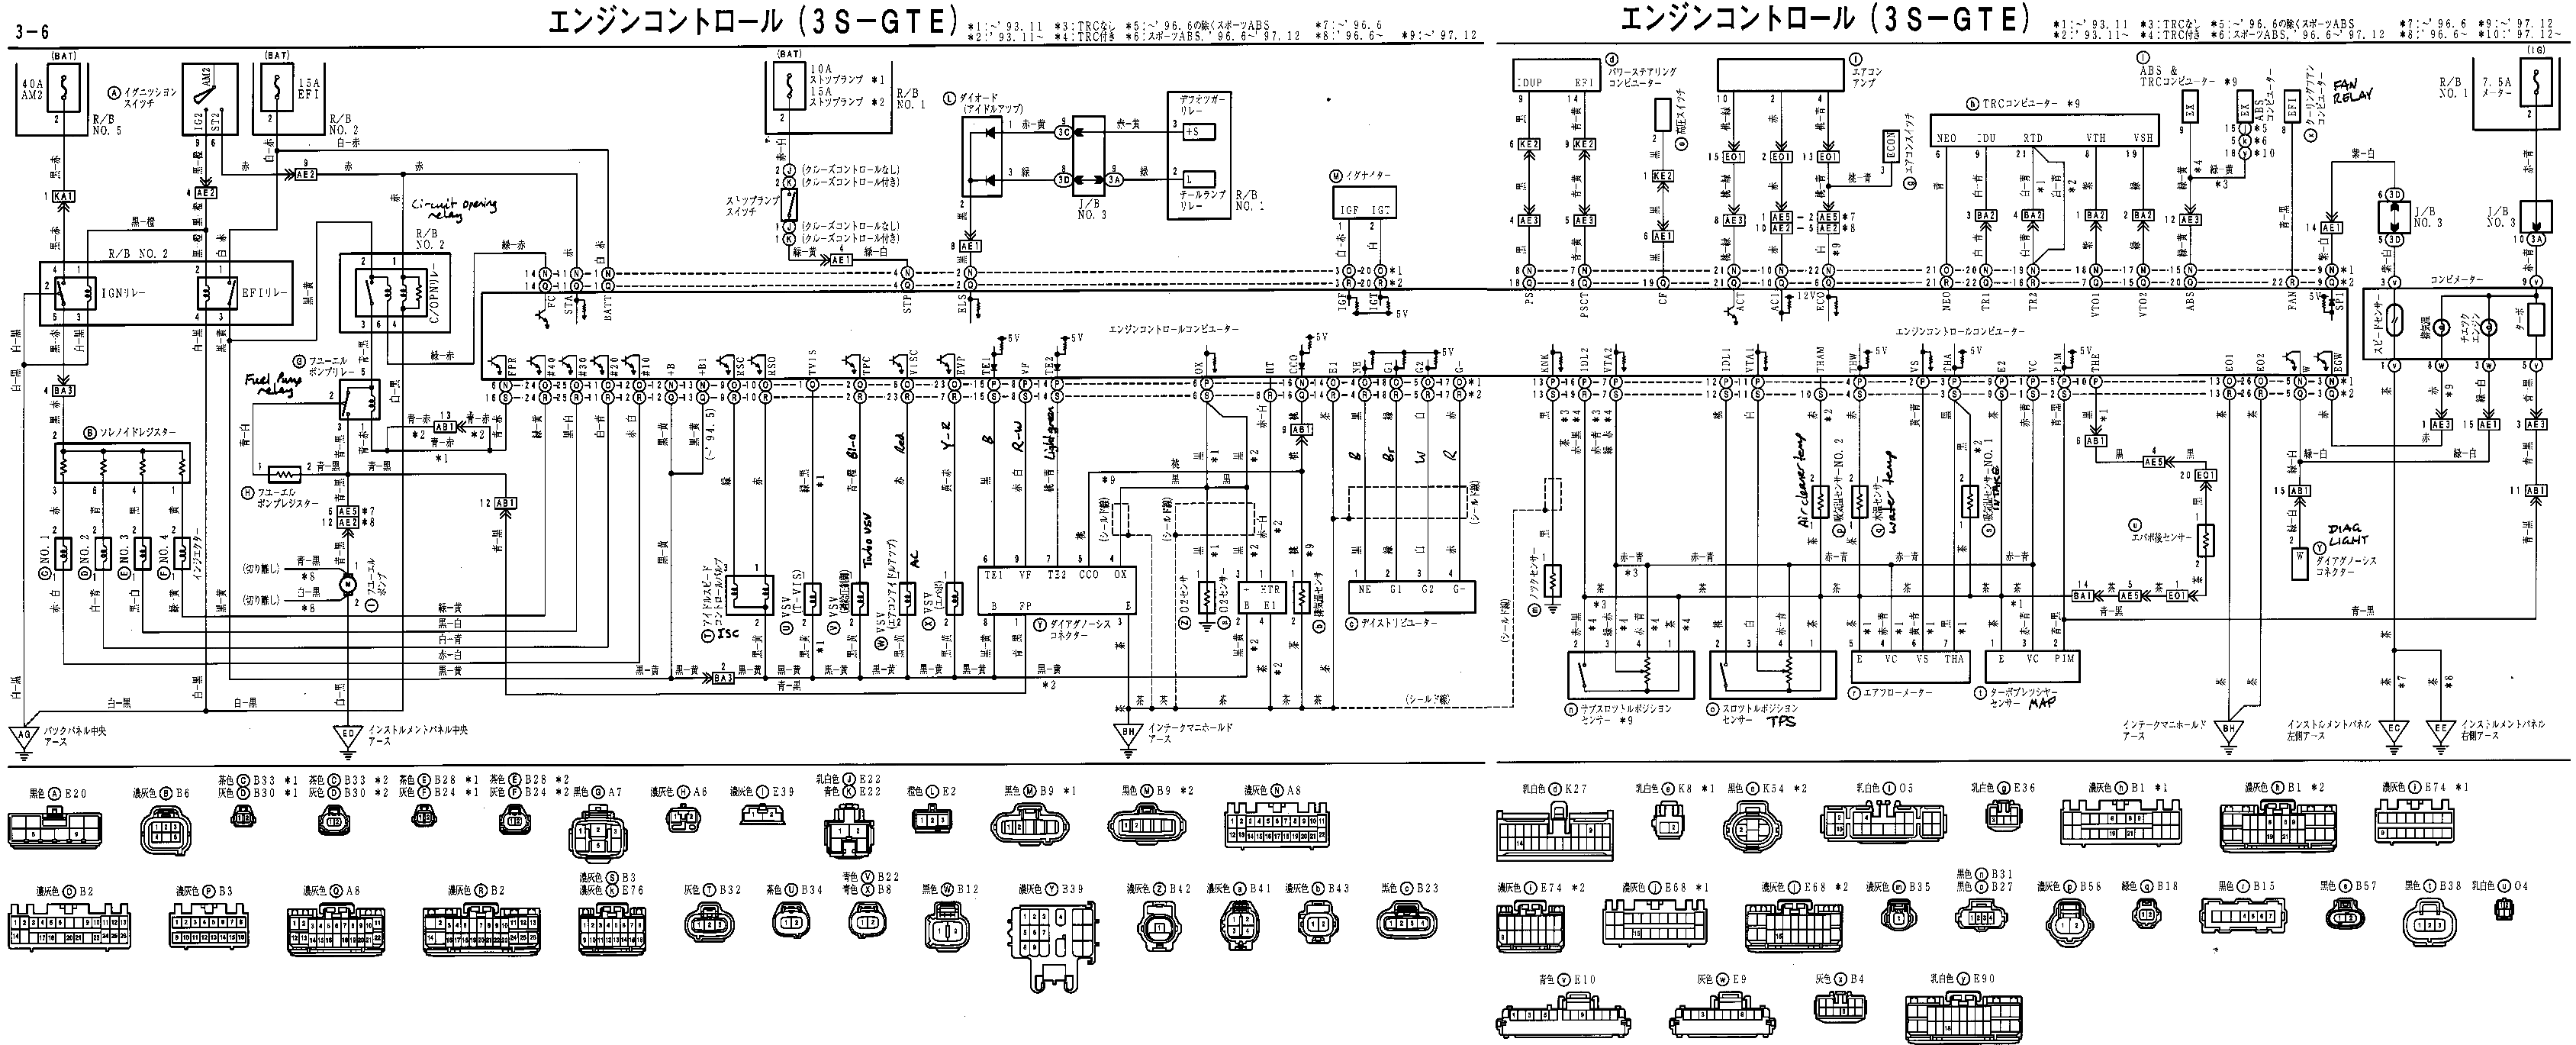 Unknown 3SGTE Diagram mwp's toyota celica gt4 (st165, st185, st205) documents & media 3sgte wiring diagram at webbmarketing.co